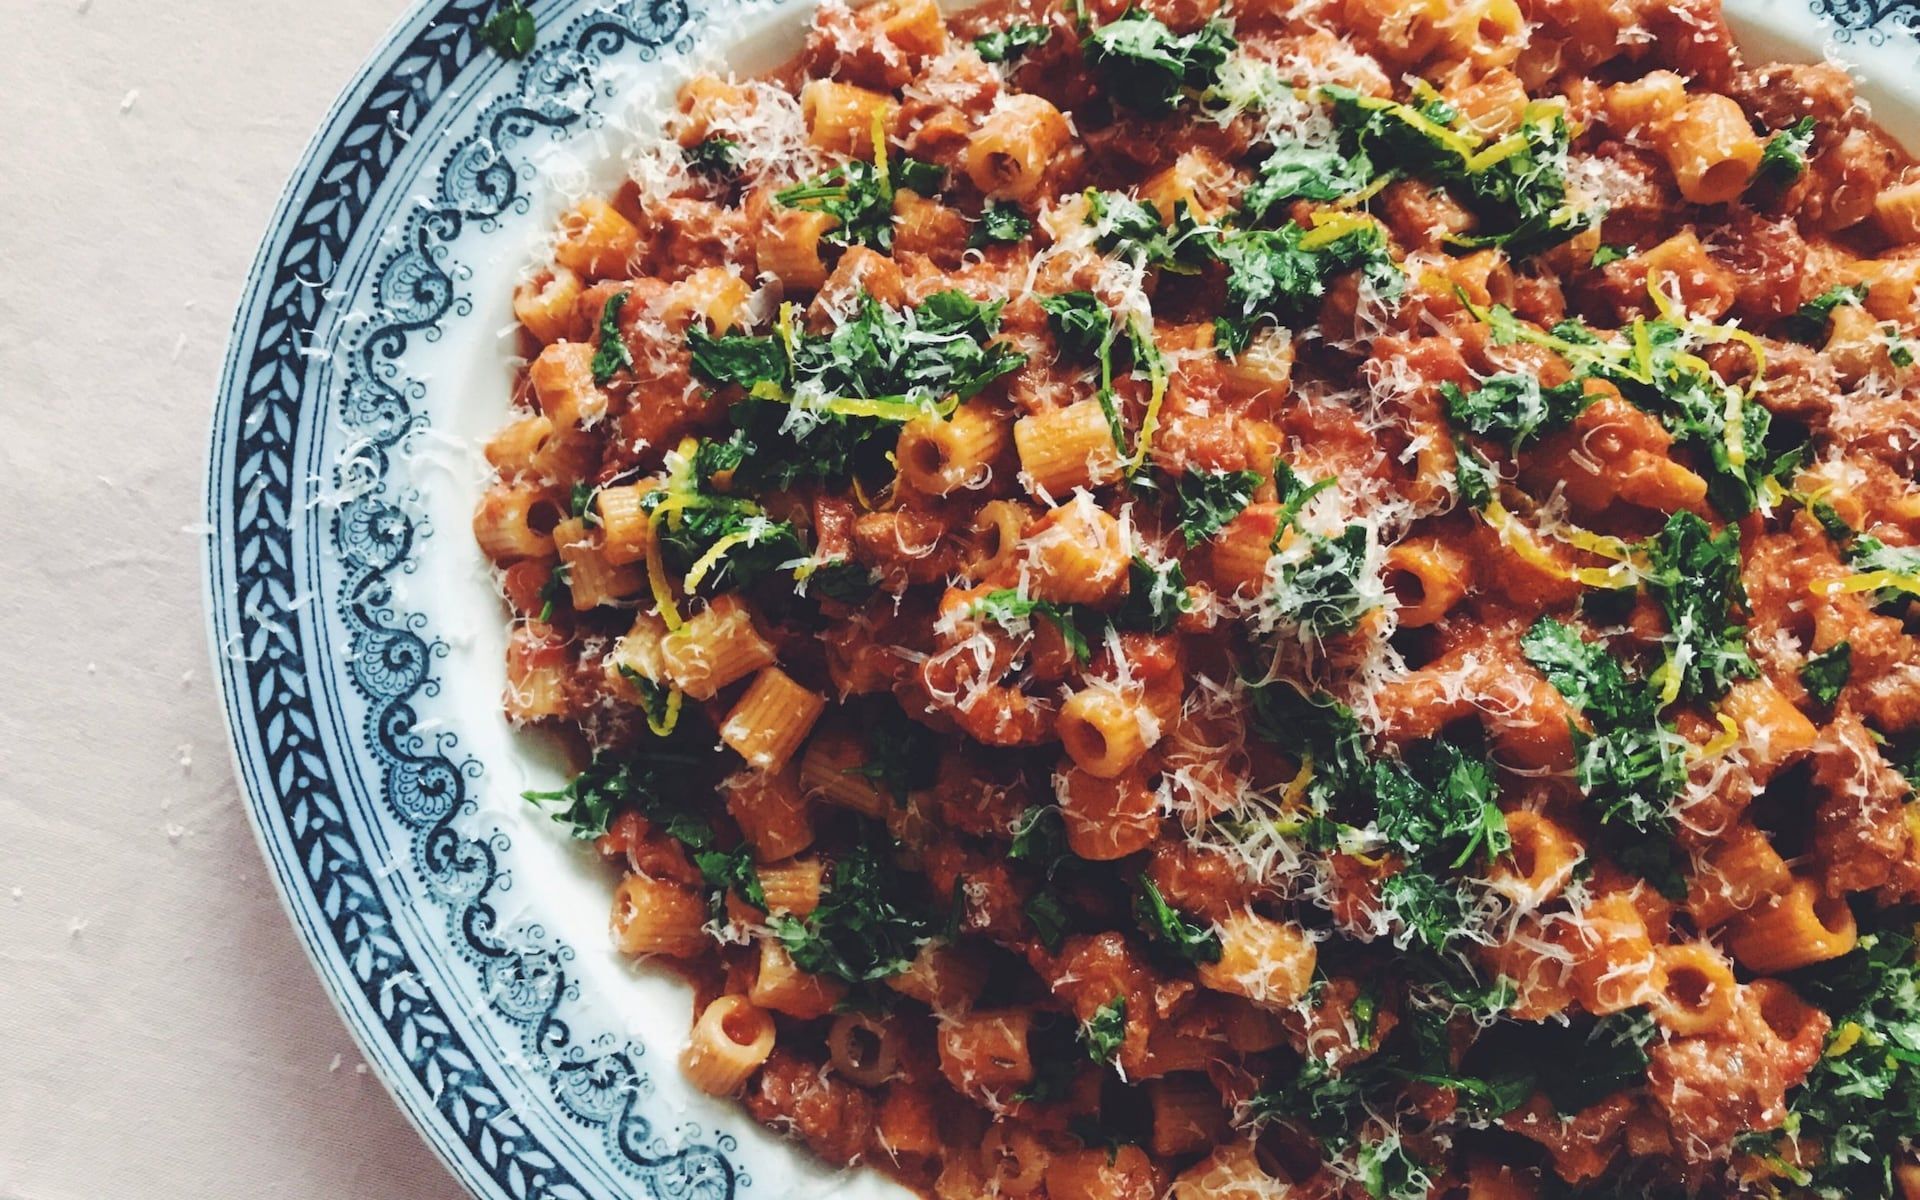 Friday night dinner: Pasta with sausage and fennel ragout and gremolata #fridaynightdinner Friday night dinner: Pasta with sausage and fennel ragout and gremolata #fridaynightdinner